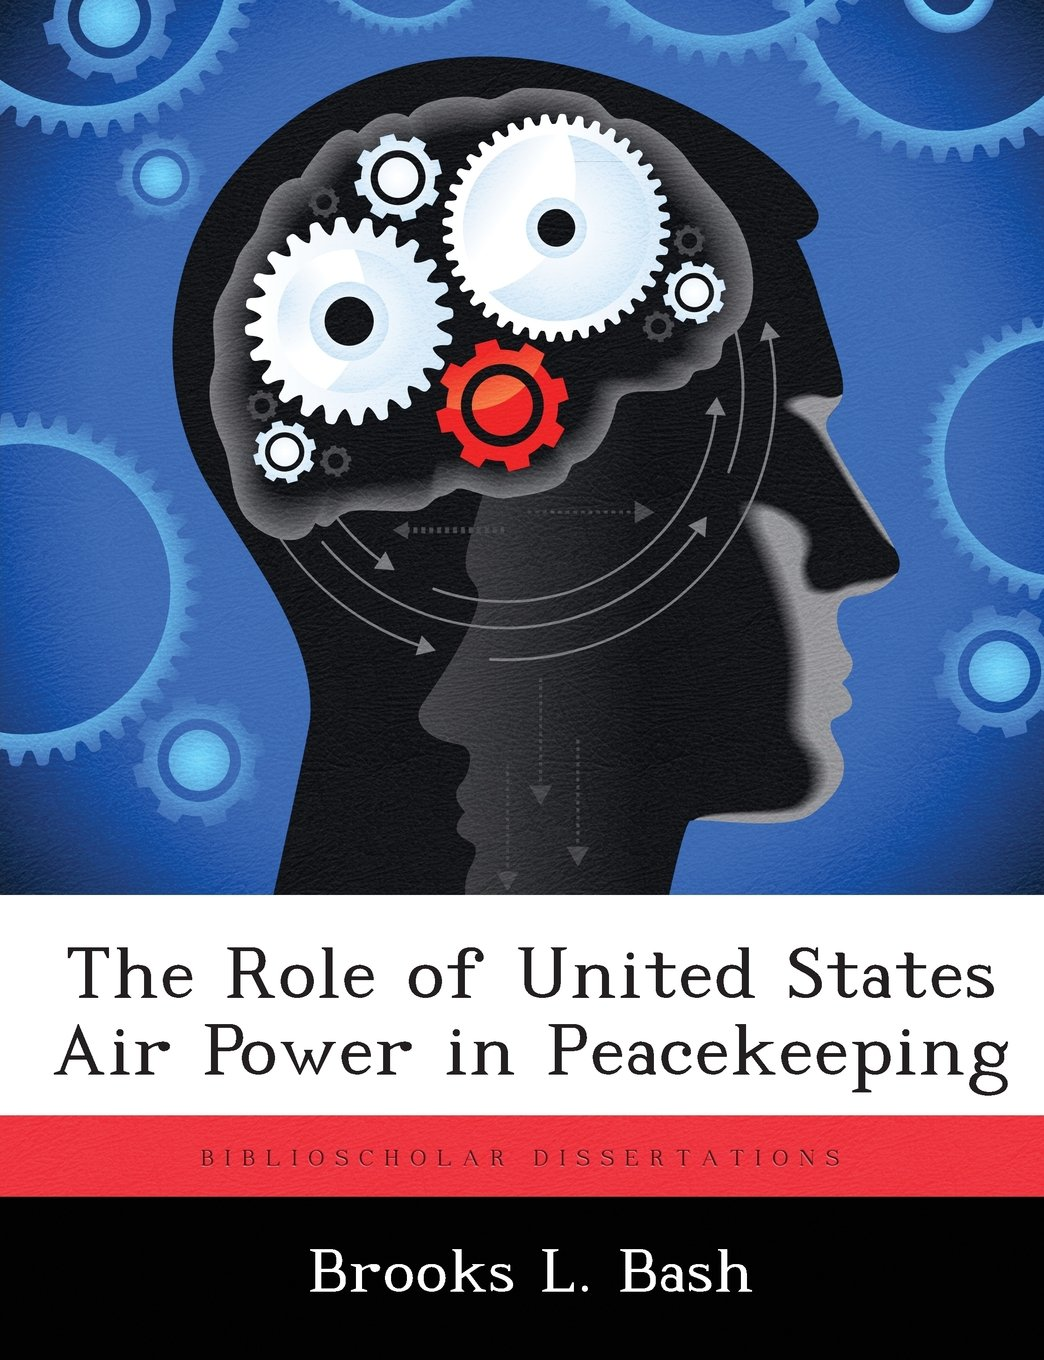 The Role of United States Air Power in Peacekeeping pdf